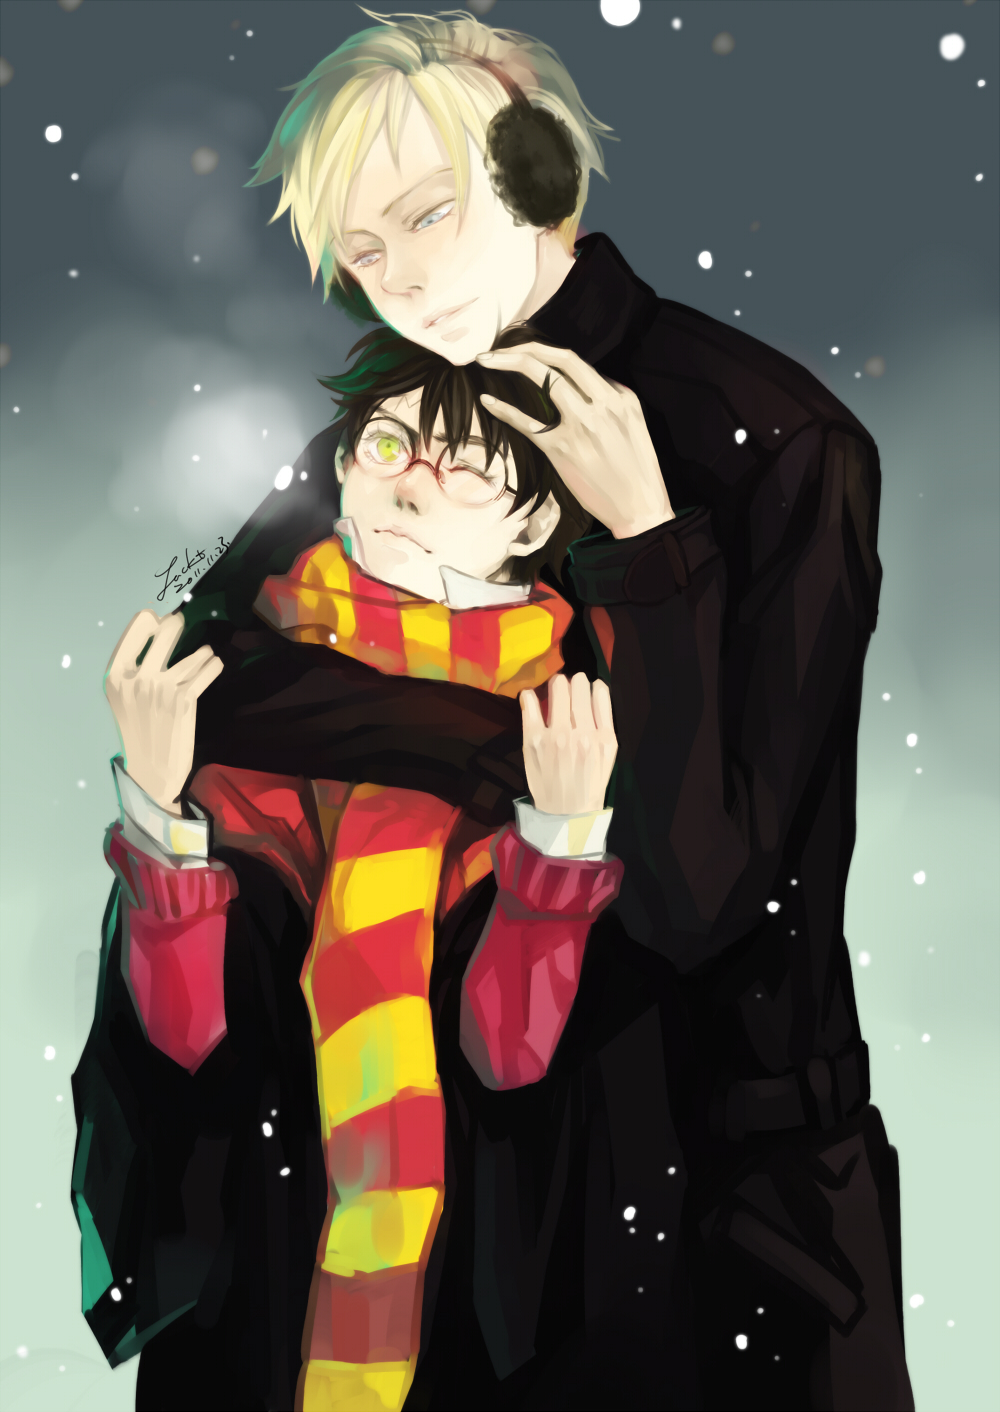 Draco Malfoy hugging Harry Potter on a winter day - A winter day harry-potter-yaoi Harry Potter Glasses Draco Malfoy - fanarts on yaoi-online.com